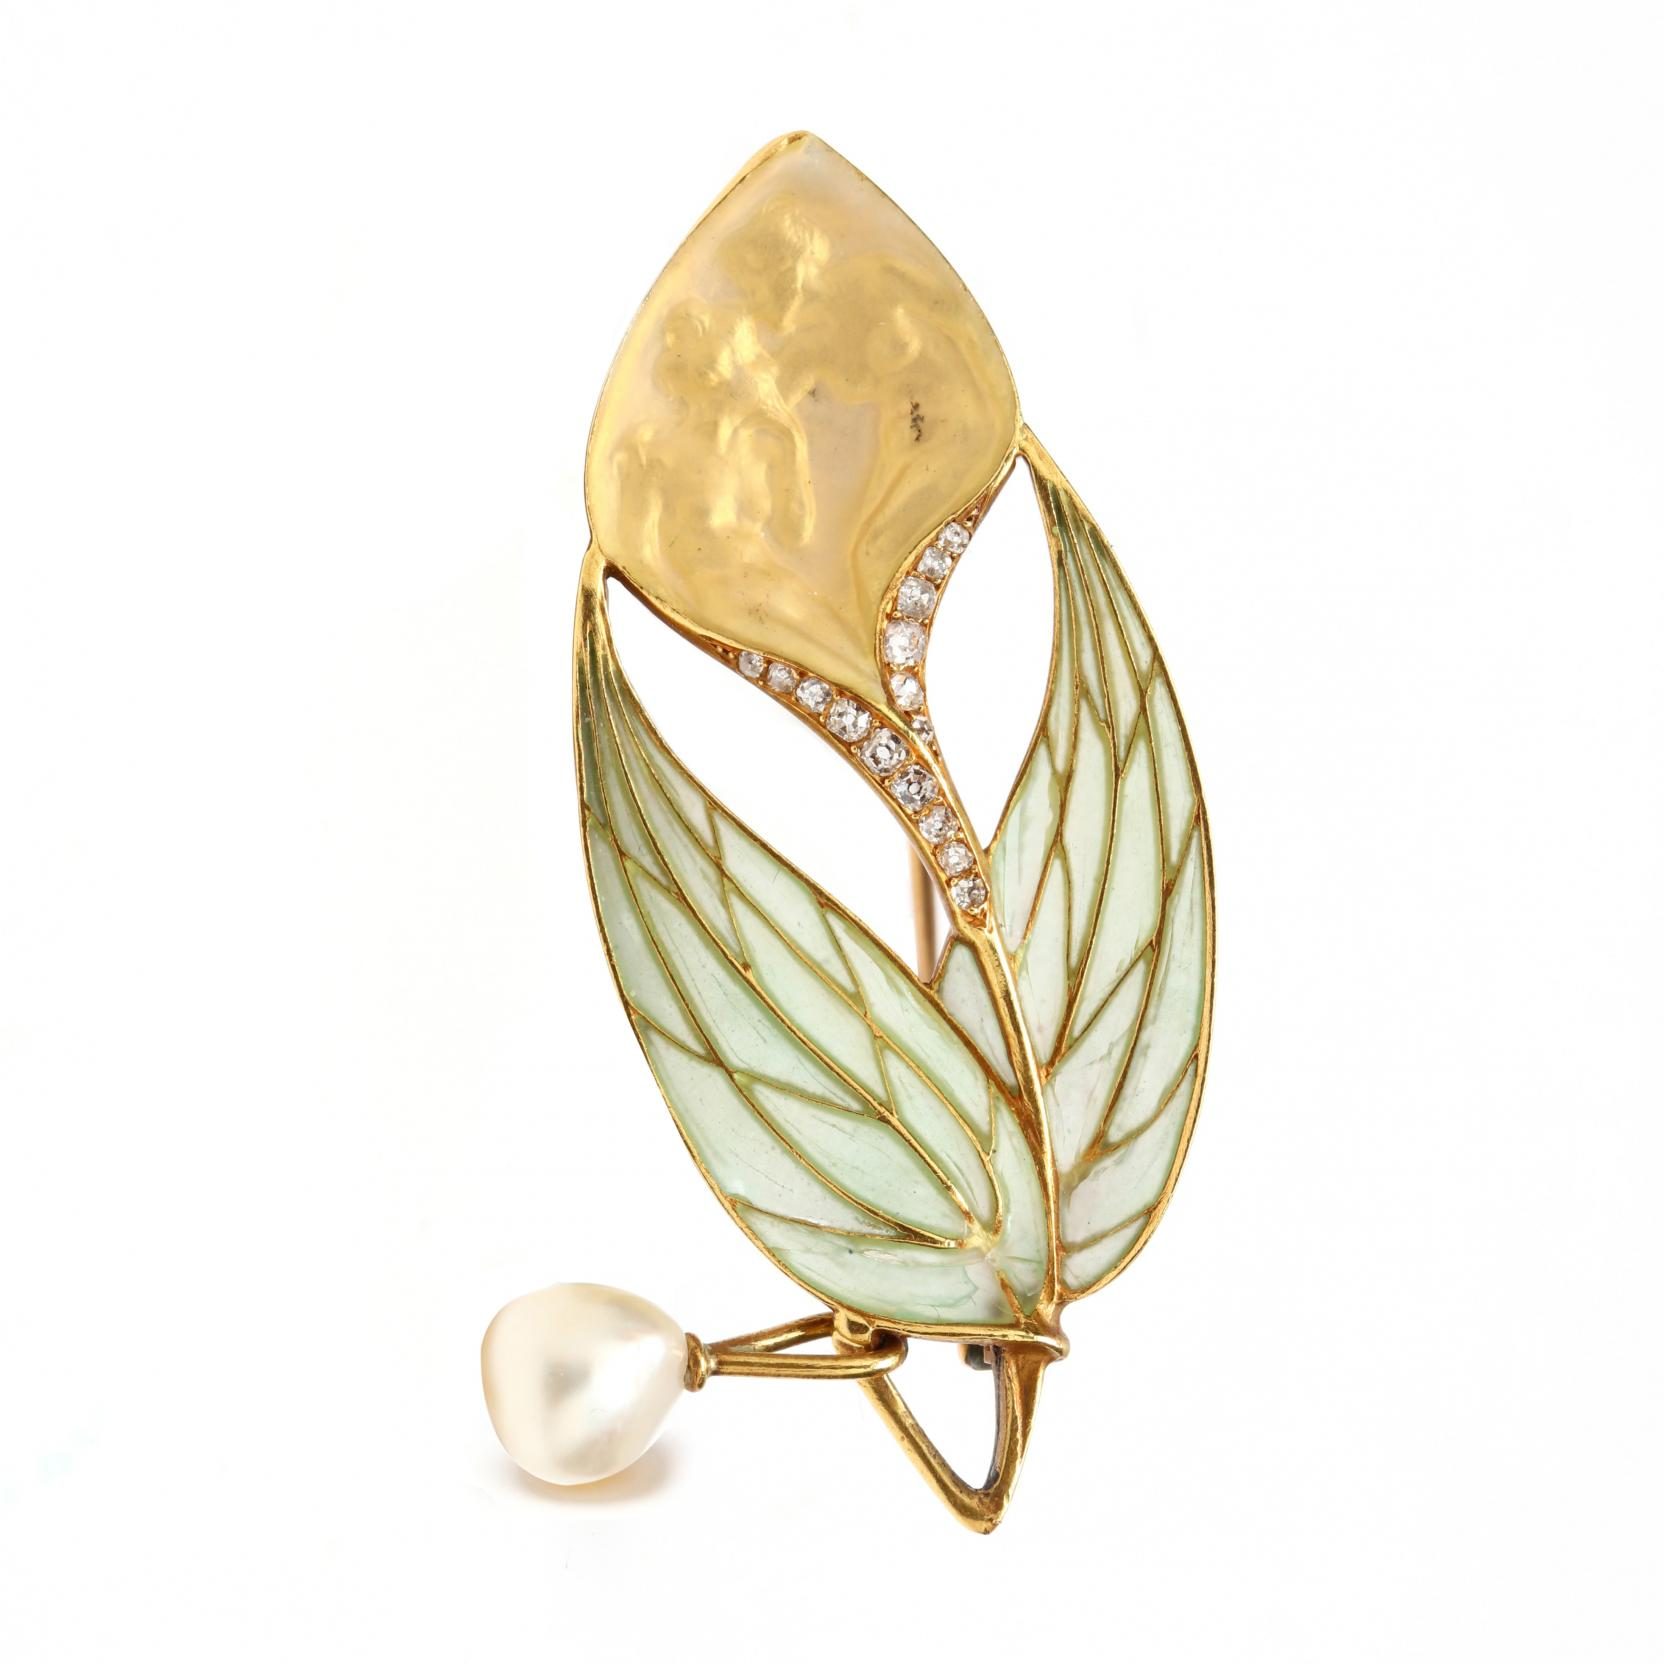 art-nouveau-plique-a-jour-bloomed-gold-and-pearl-brooch